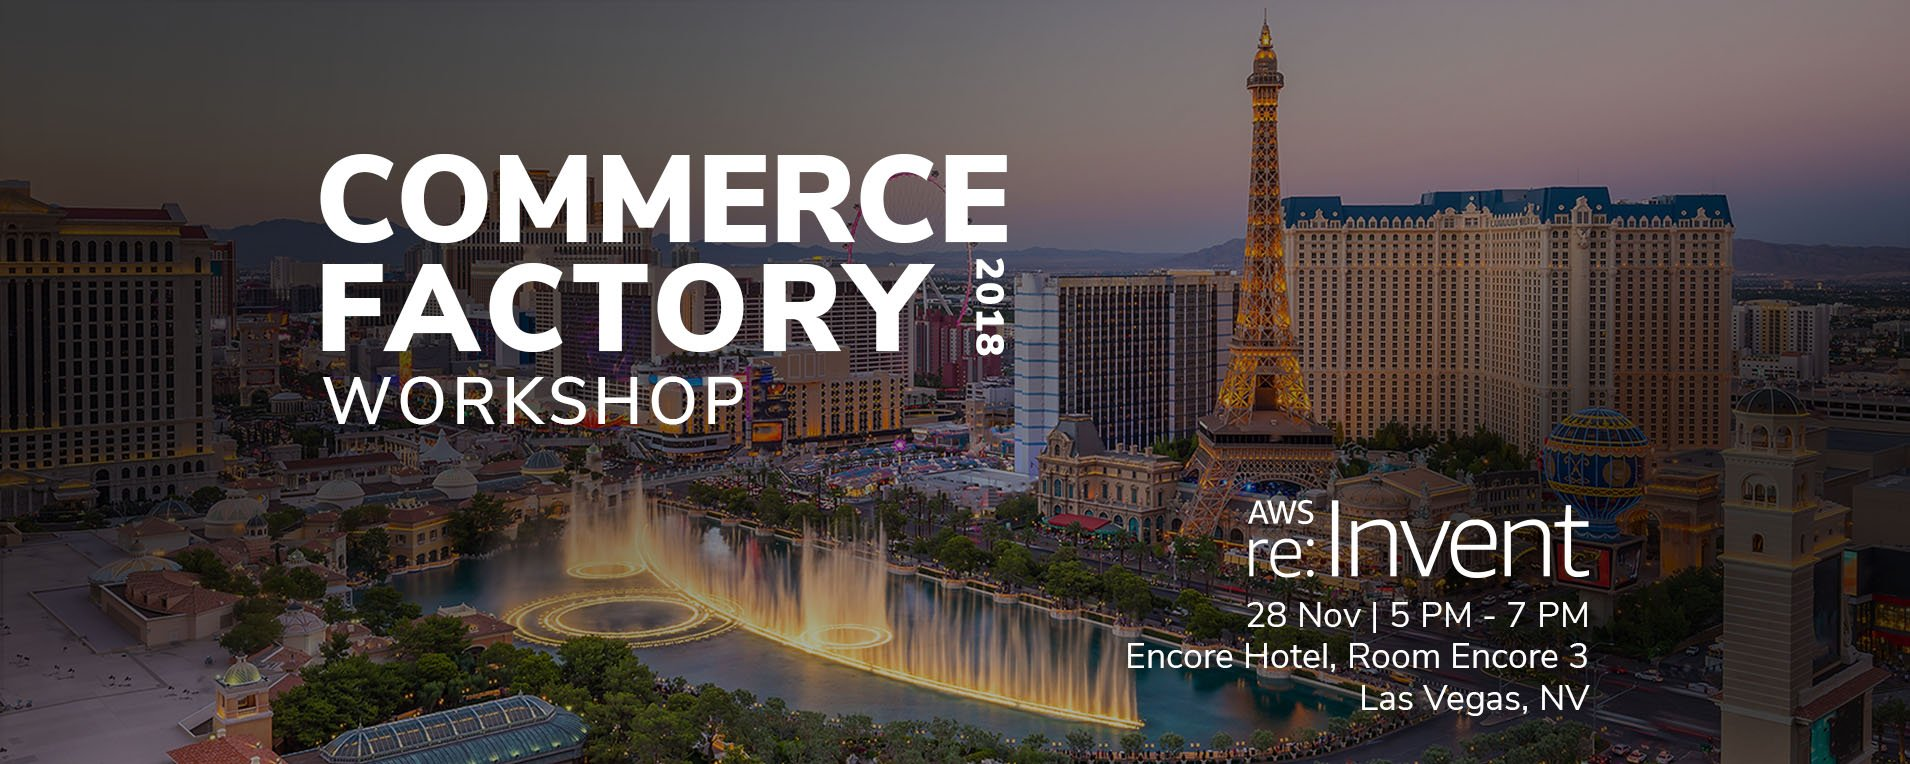 Time Travel into the Future of Digital Commerce at AWS re:Invent 2018